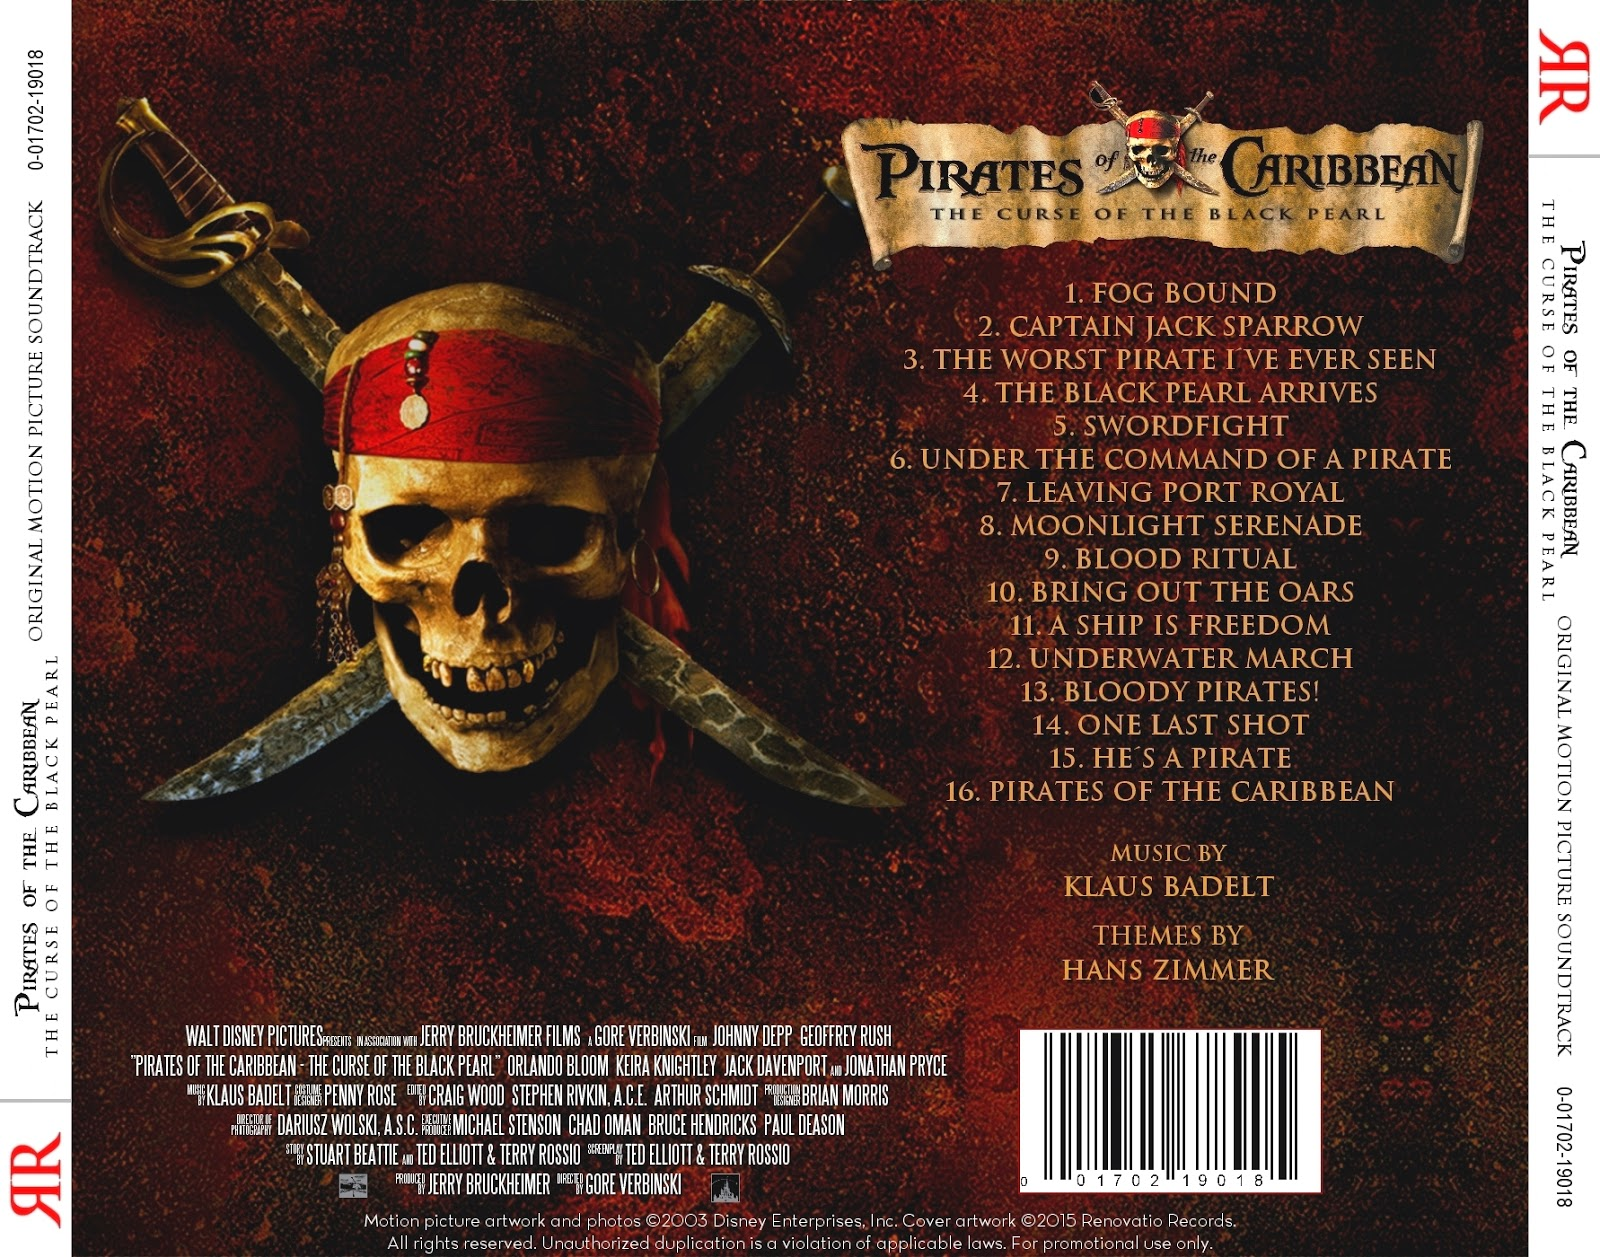 Renovatio Records: Pirates of the Caribbean: The Curse of